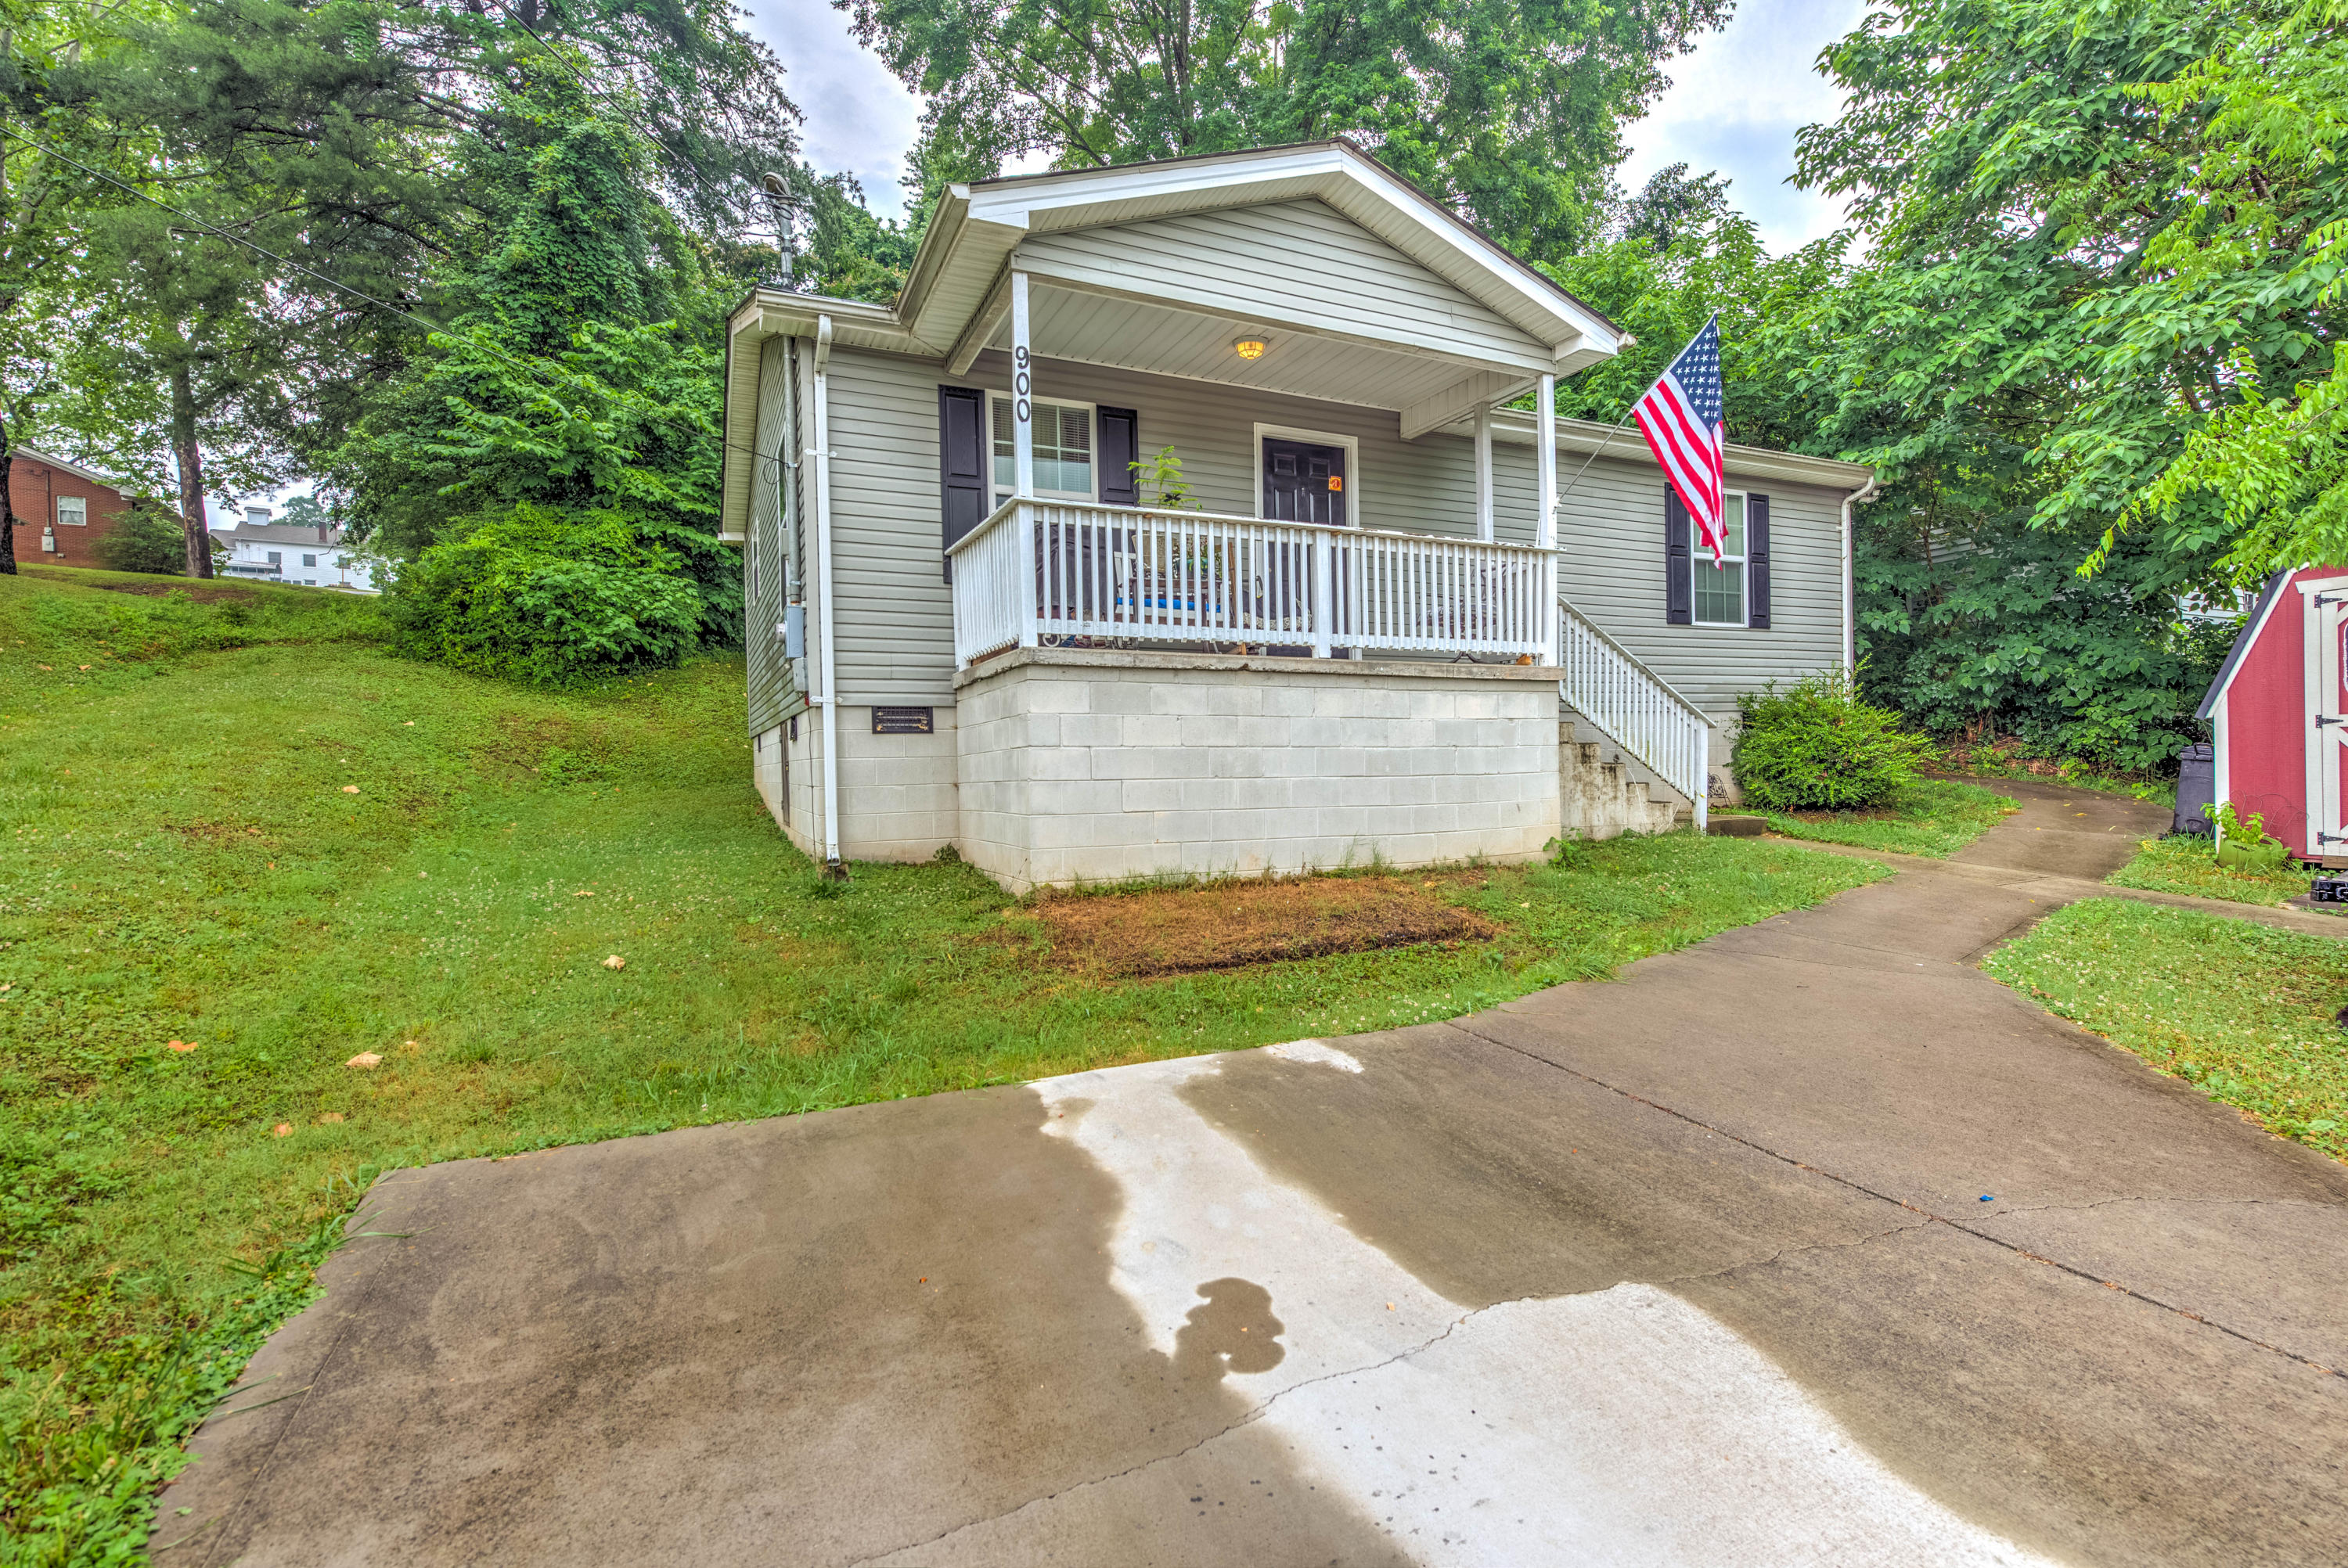 20190606121008040249000000-o Listings anderson county homes for sale